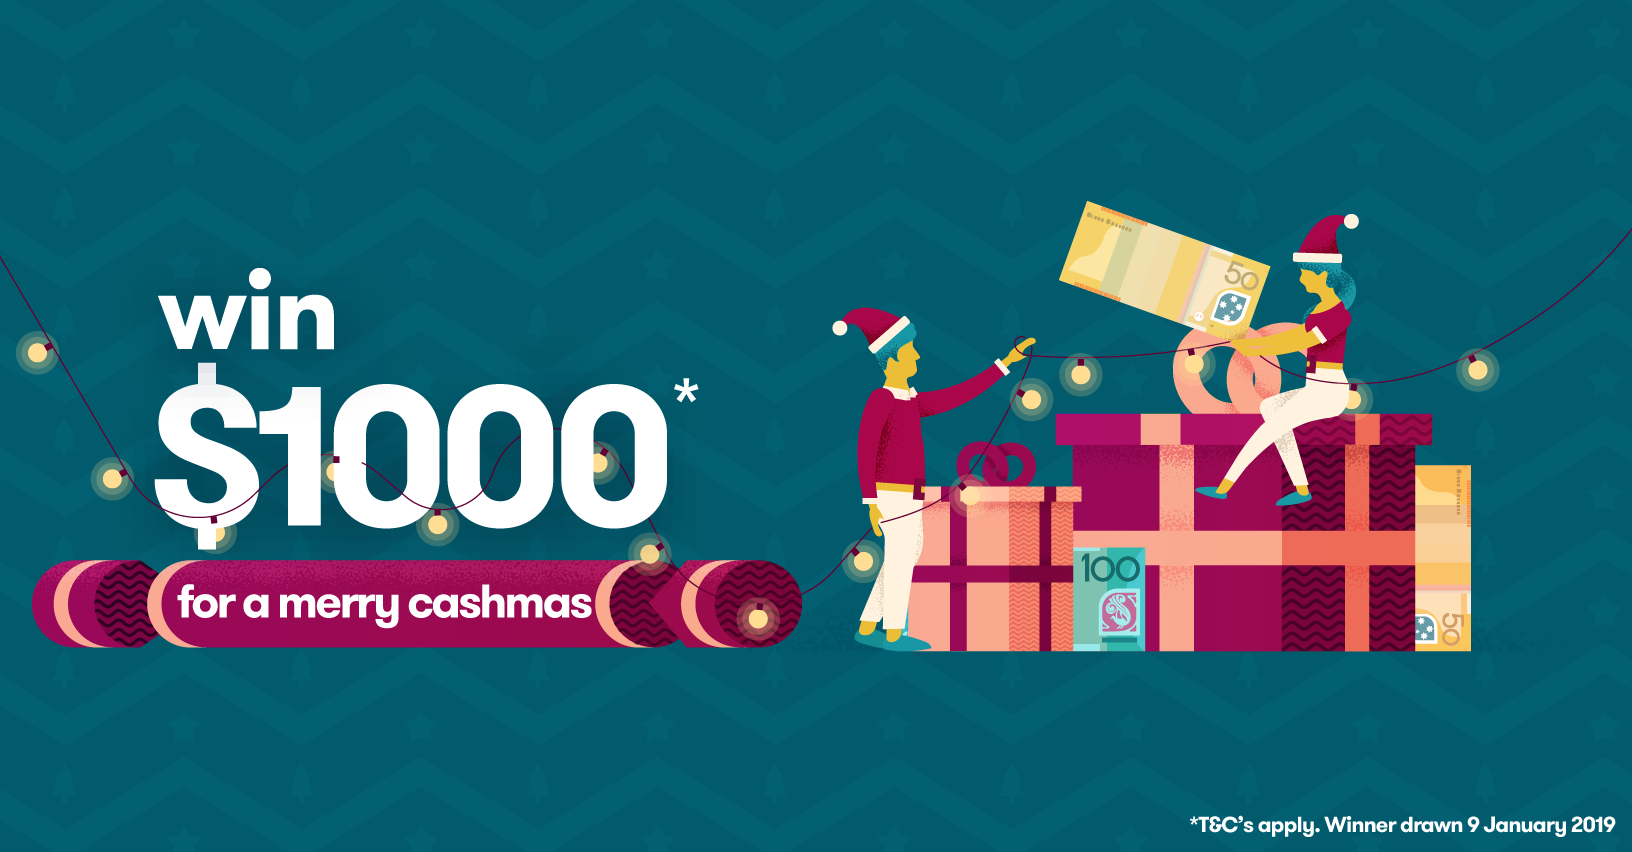 Chance to win $1000 Cash Christmas Giveaway